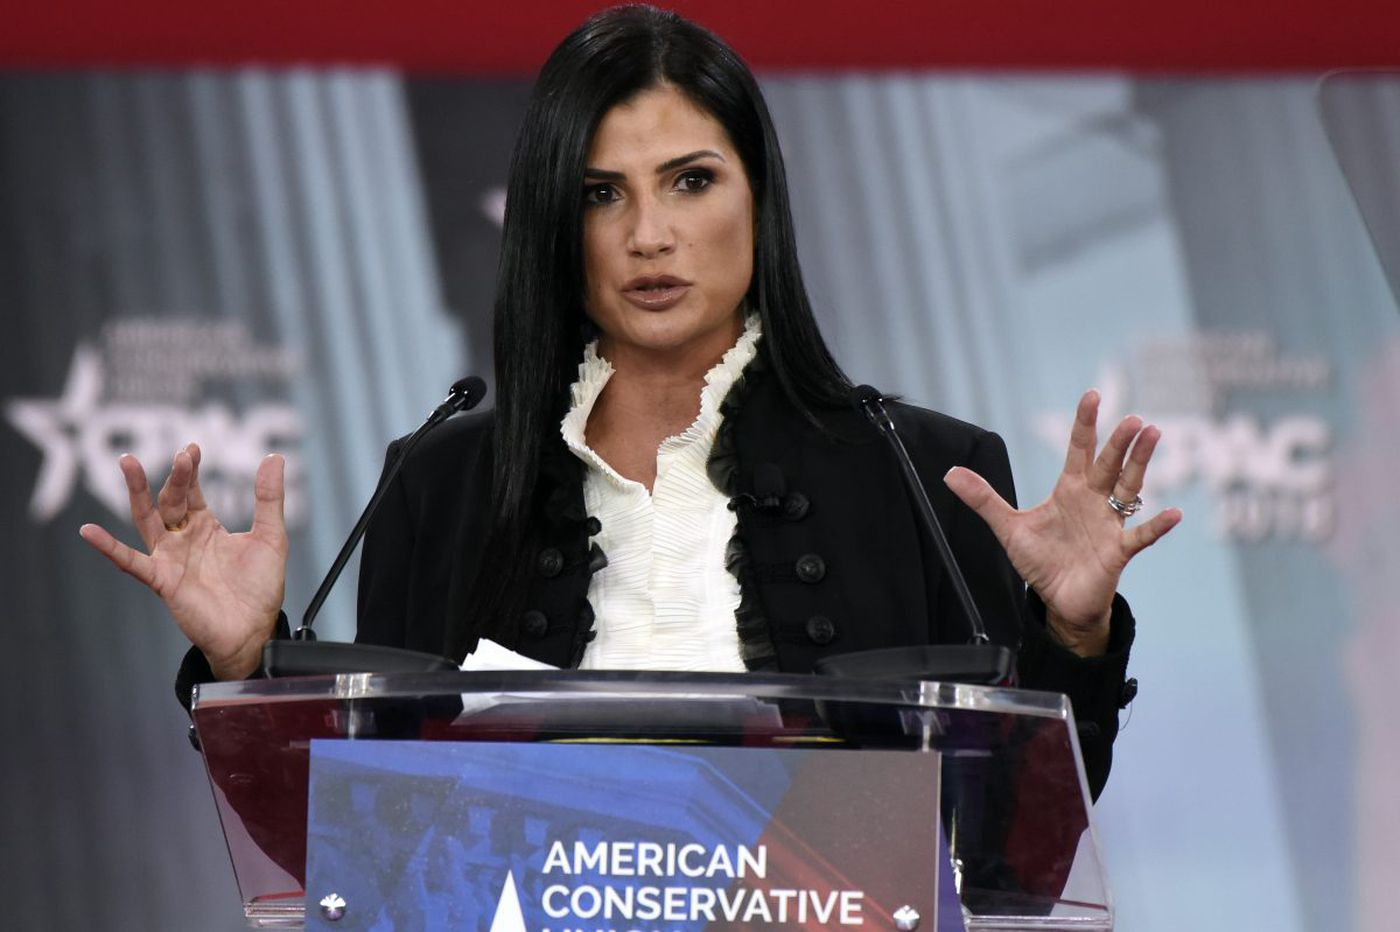 Uh-oh. The big, bad NRA is hearing footsteps | Stu Bykofsky